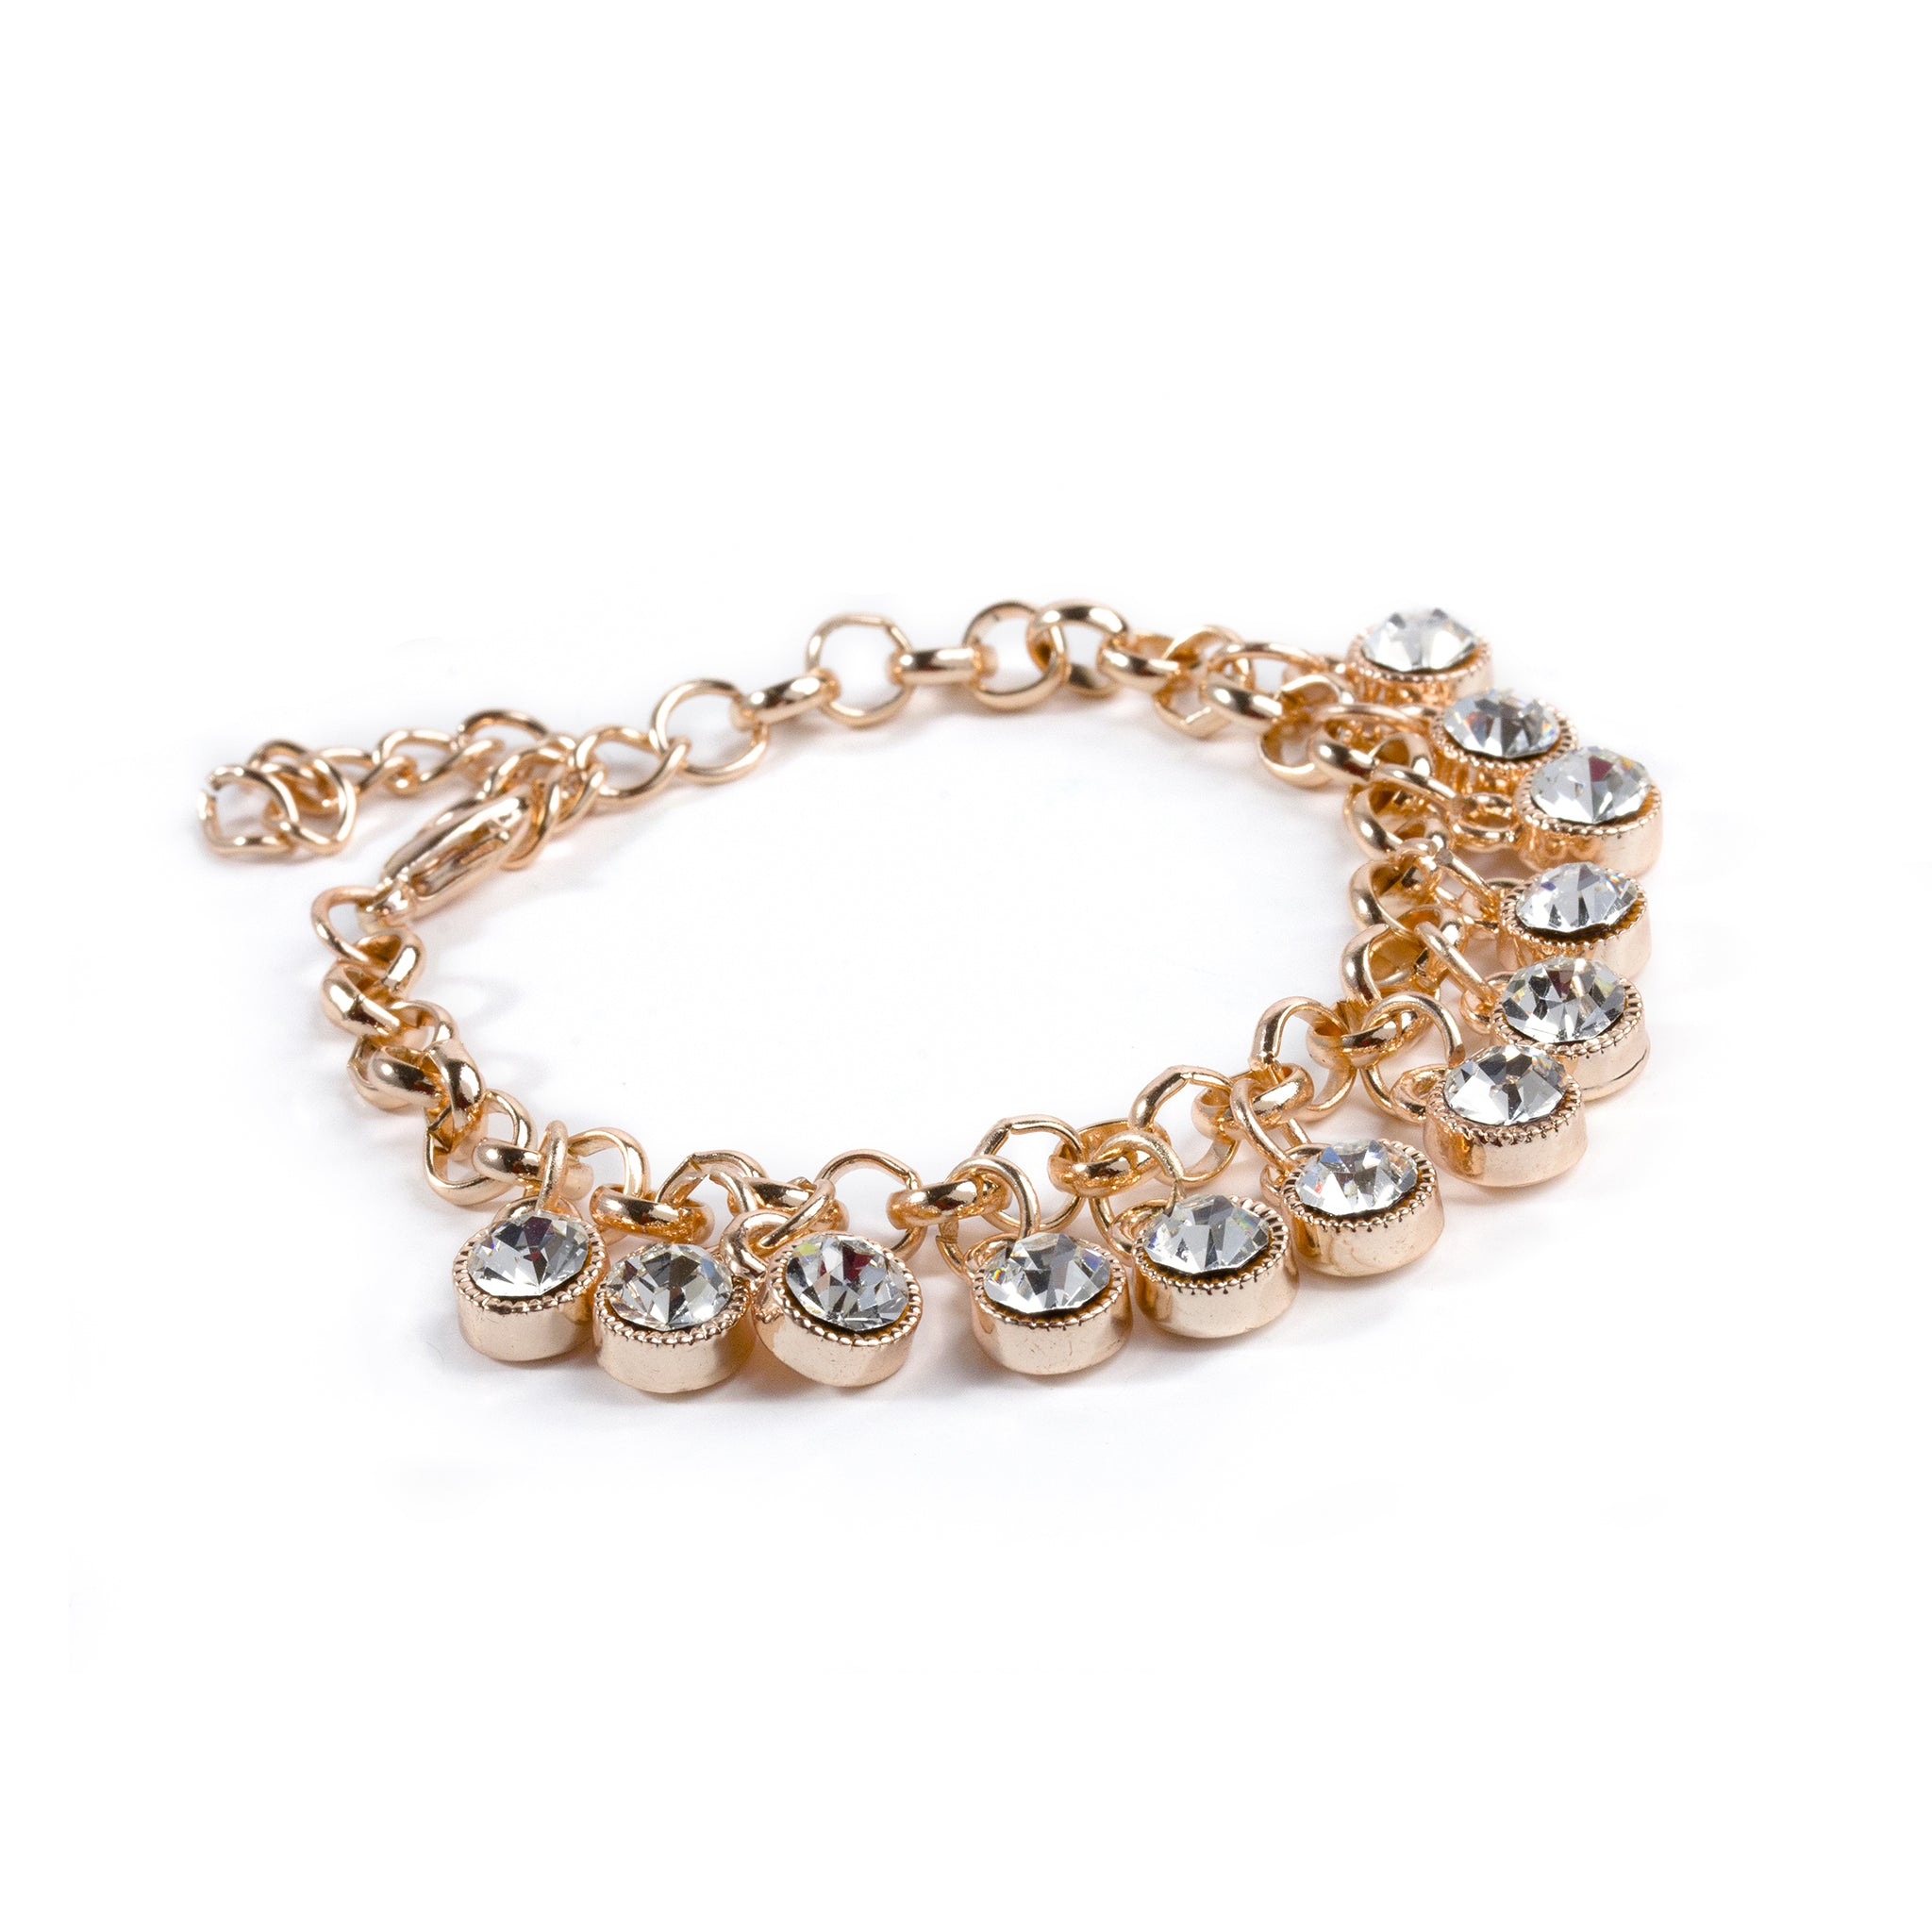 Chain Bracelet with Dangling Zircon